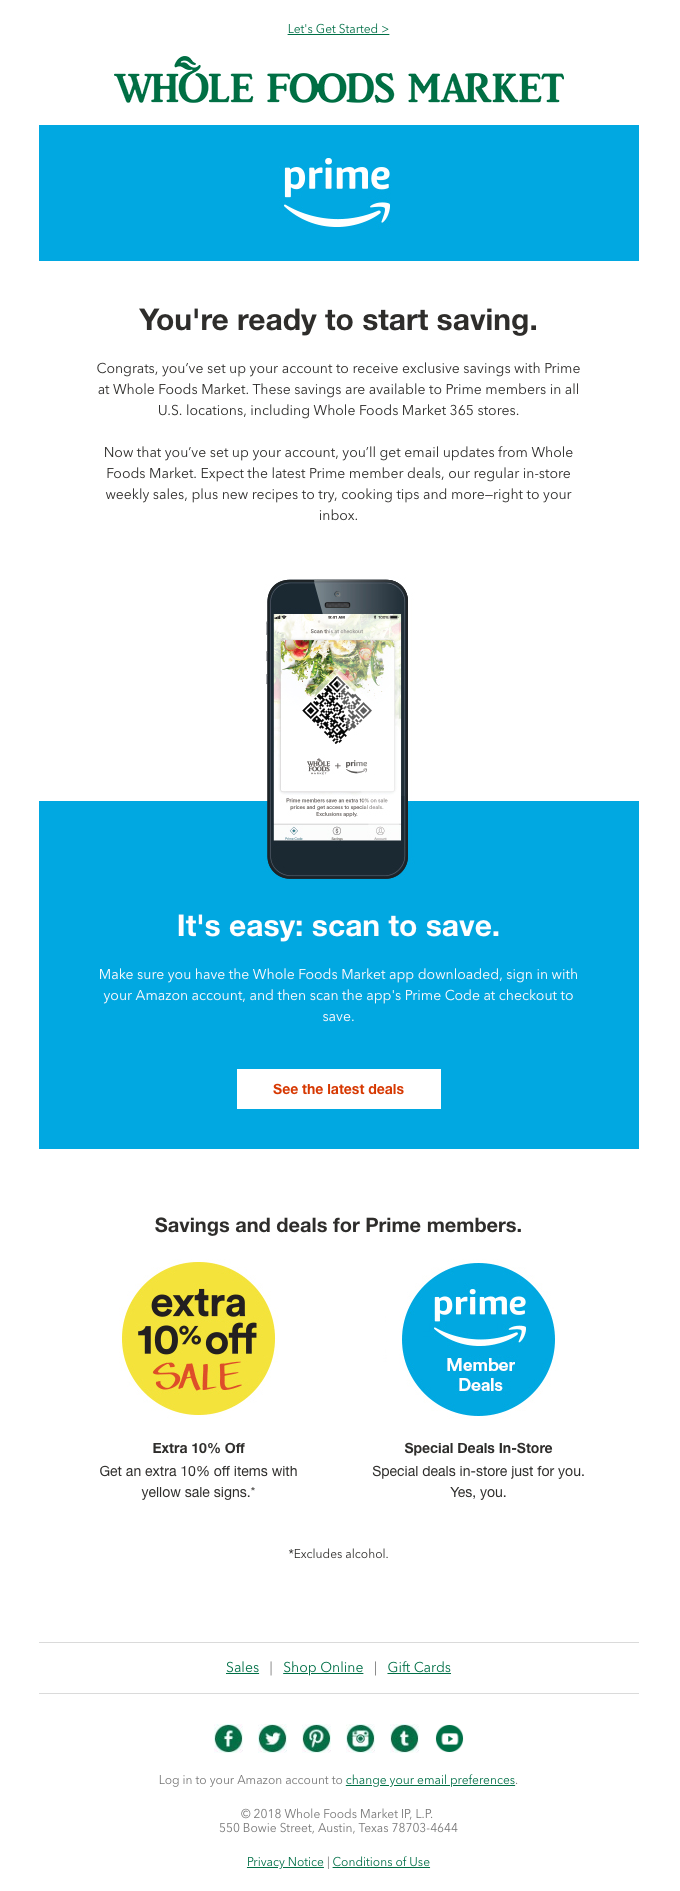 Welcome! You're Set Up to Save with Prime